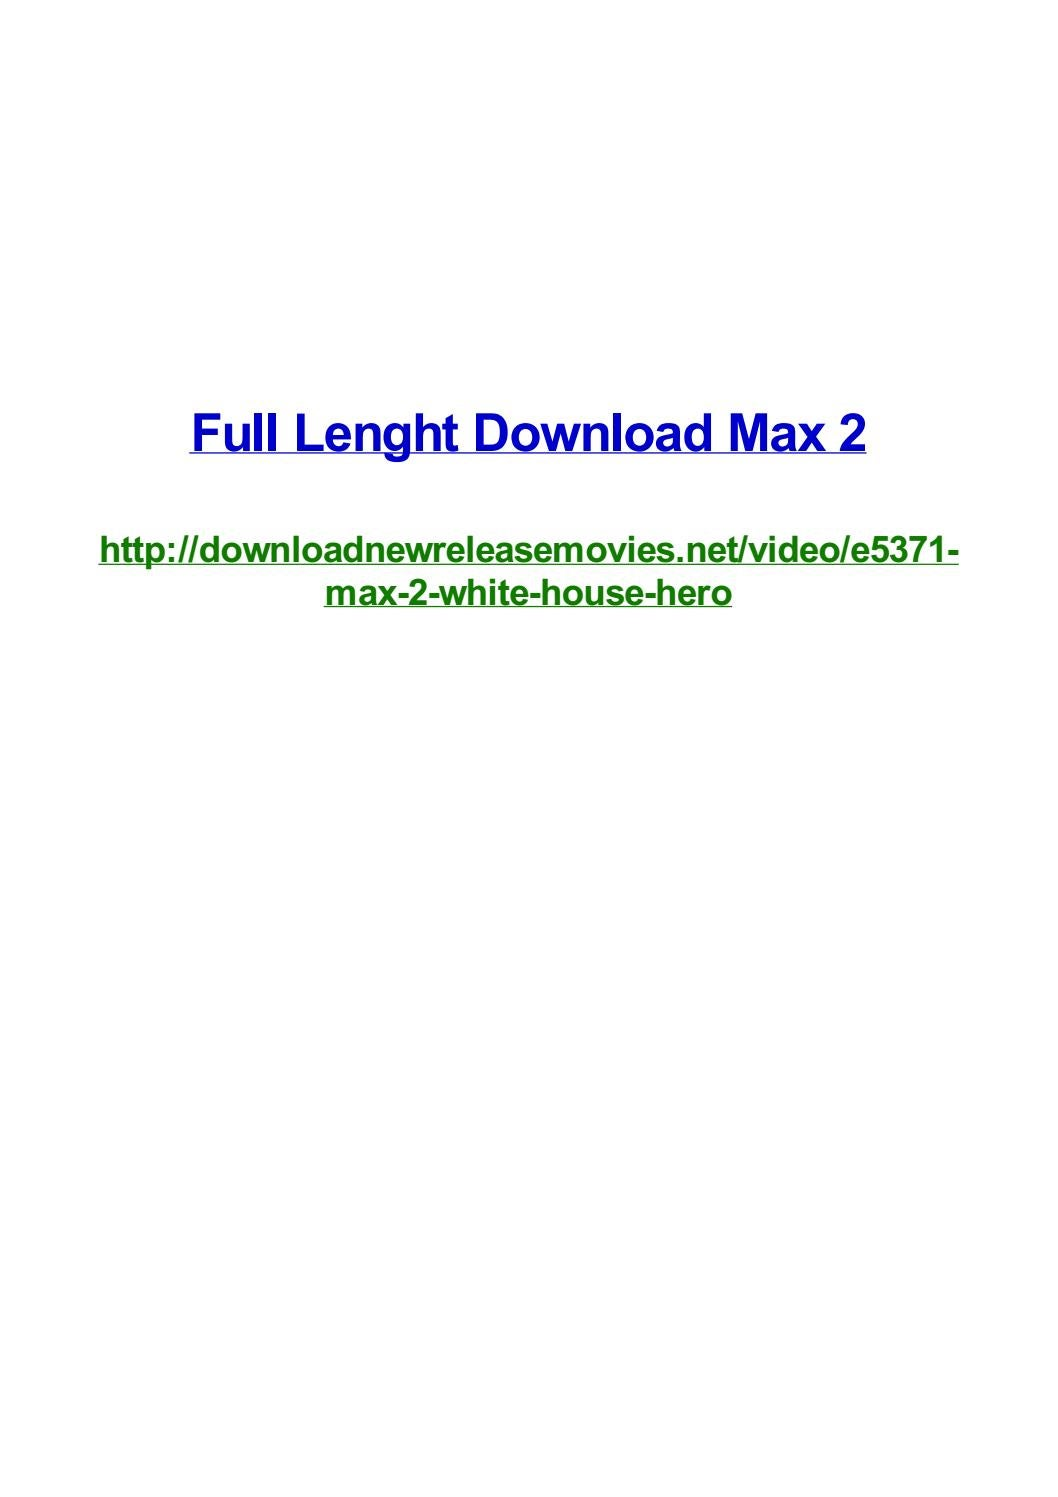 Full Lenght Download Max 2 By Frank Seamons Issuu